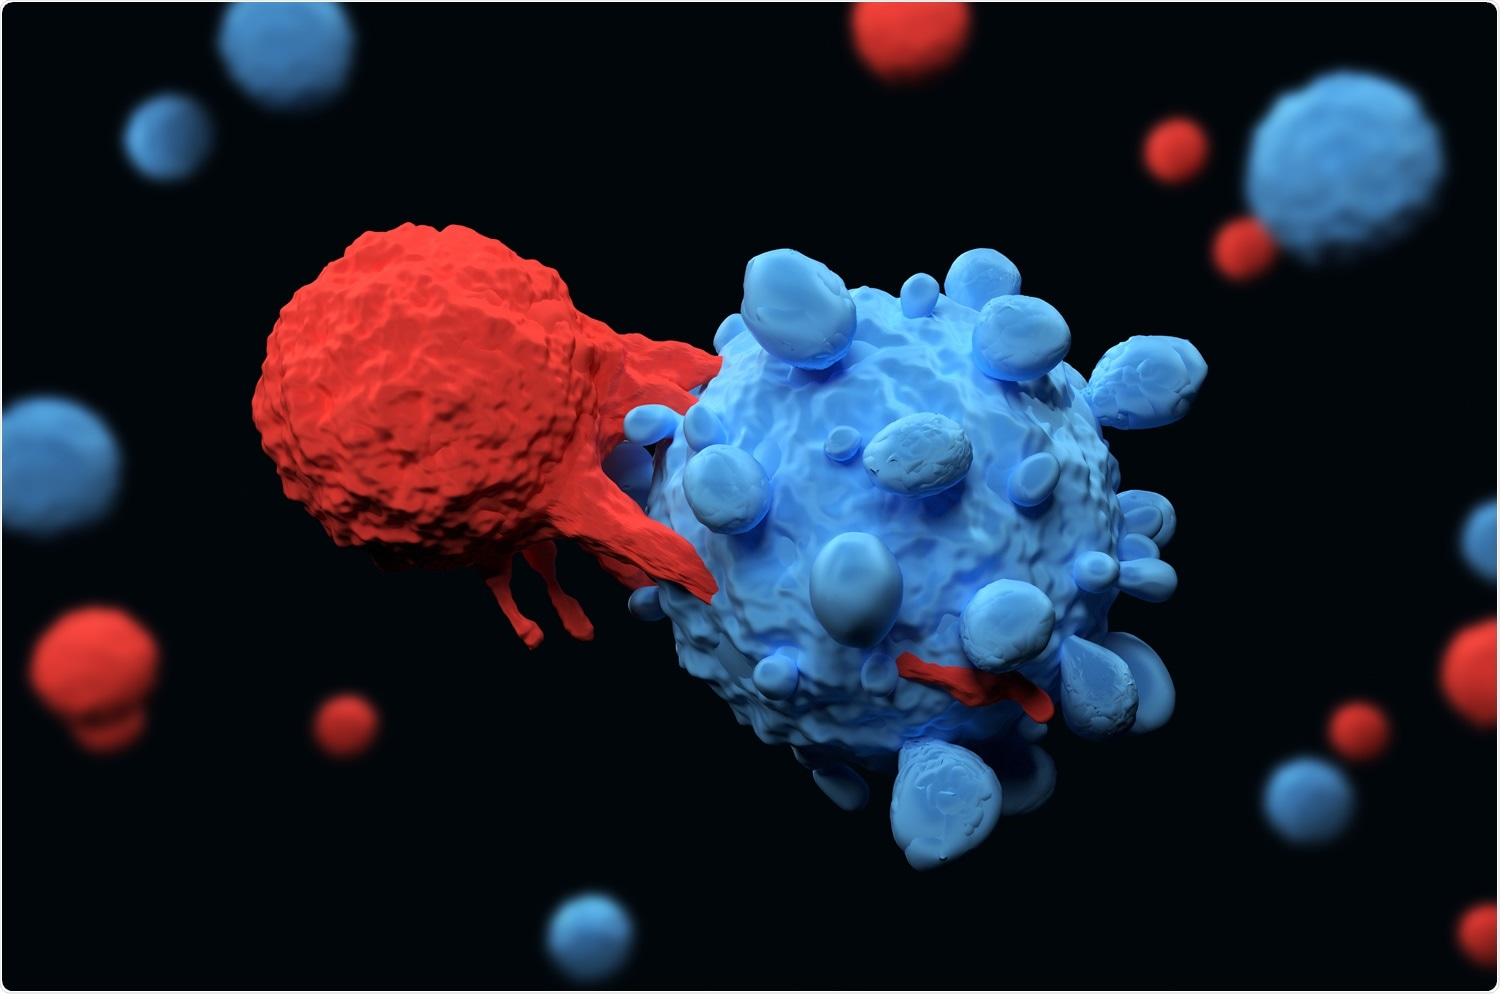 Study: Structural basis for recognition of two HLA-A2-restricted SARS-CoV-2 spike epitopes by public and private T cell receptors. Image Credit: Meletios Verras / Shutterstock